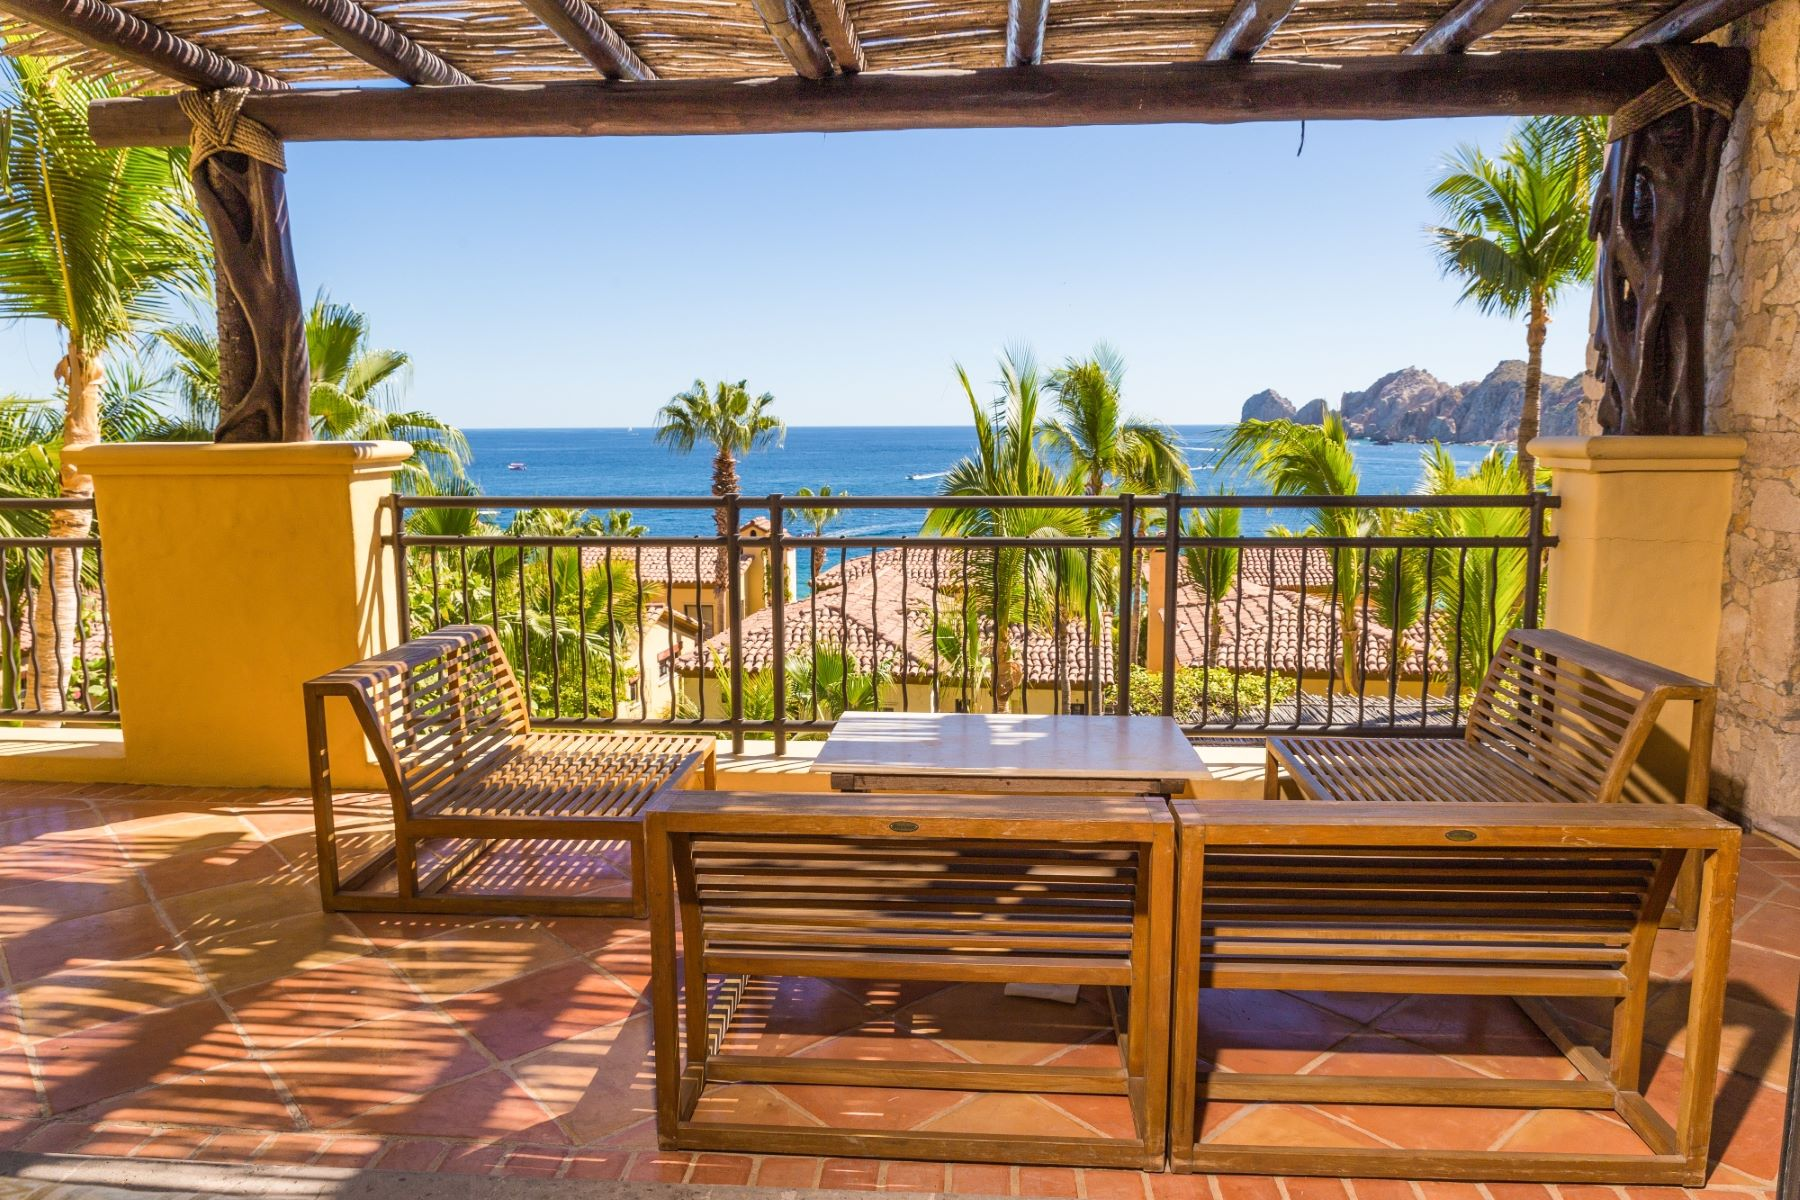 Single Family Home for Sale at Condo Residence Medano 2202 Other Baja California Sur, Mexico